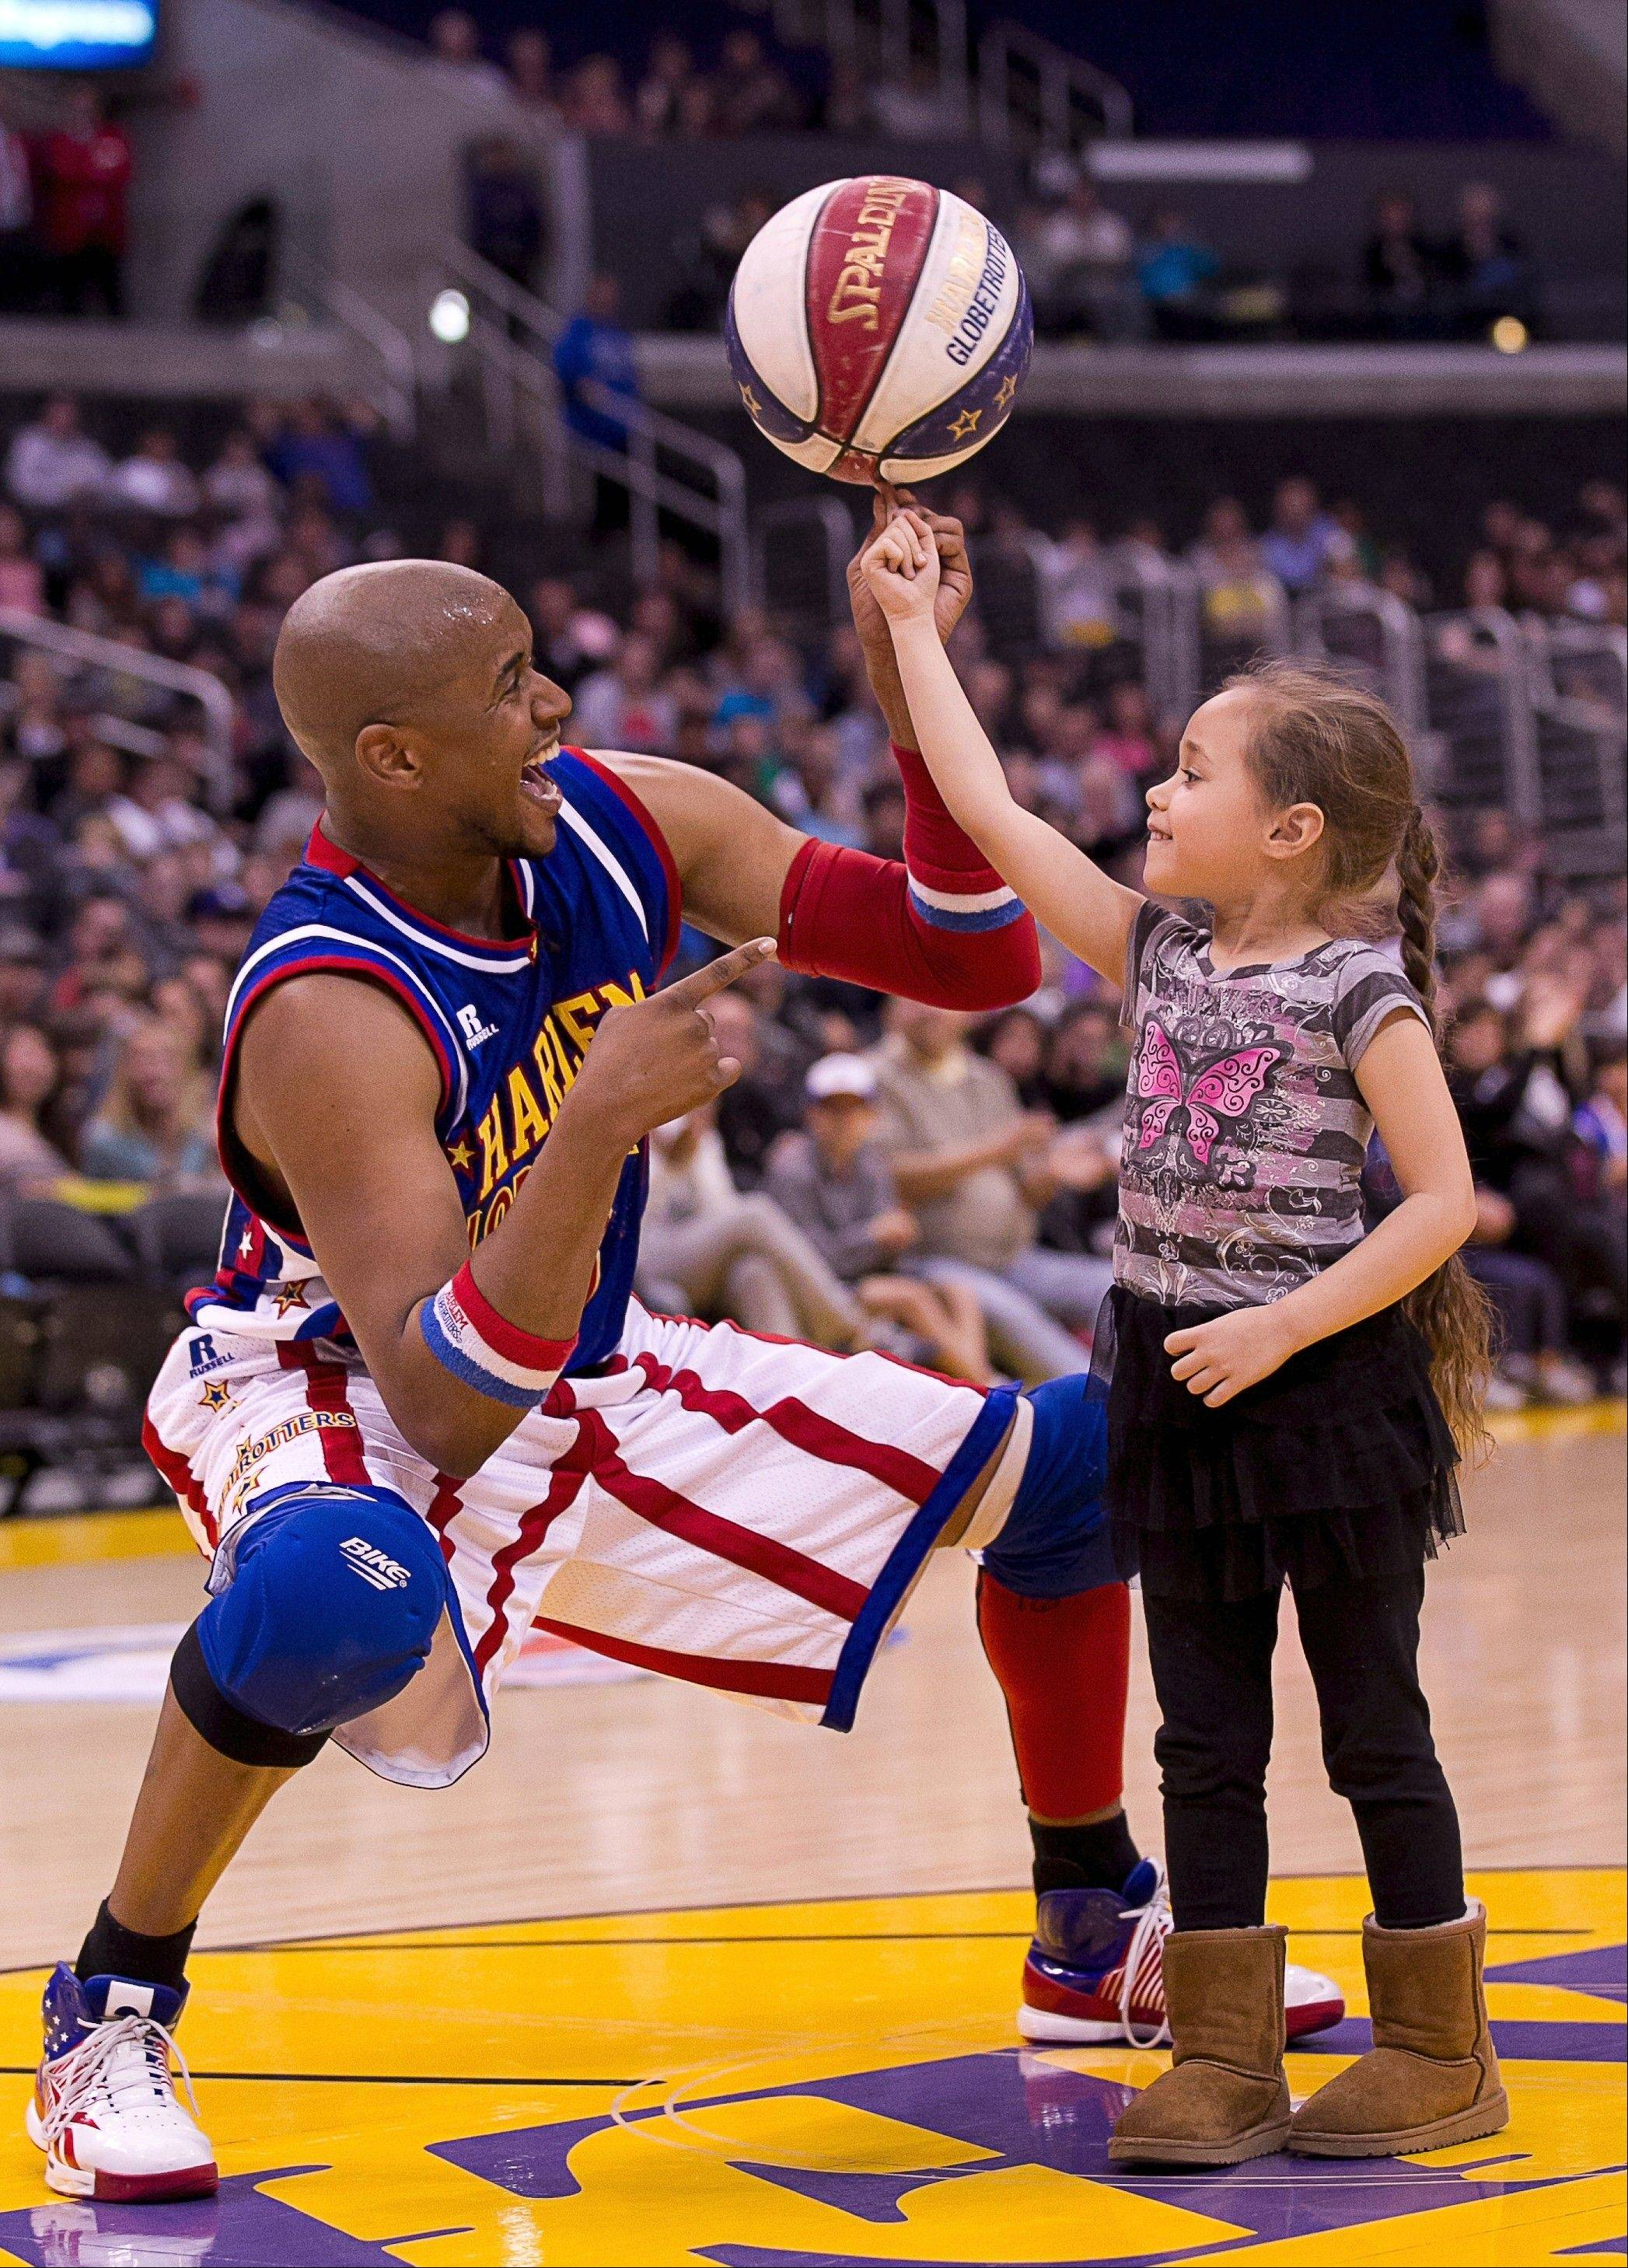 The Harlem Globetrotters exhibition basketball team heads to the Allstate Arena in Rosemont for two shows on Friday, Dec. 27. Tickets go on sale to the public on Monday, Oct. 7.